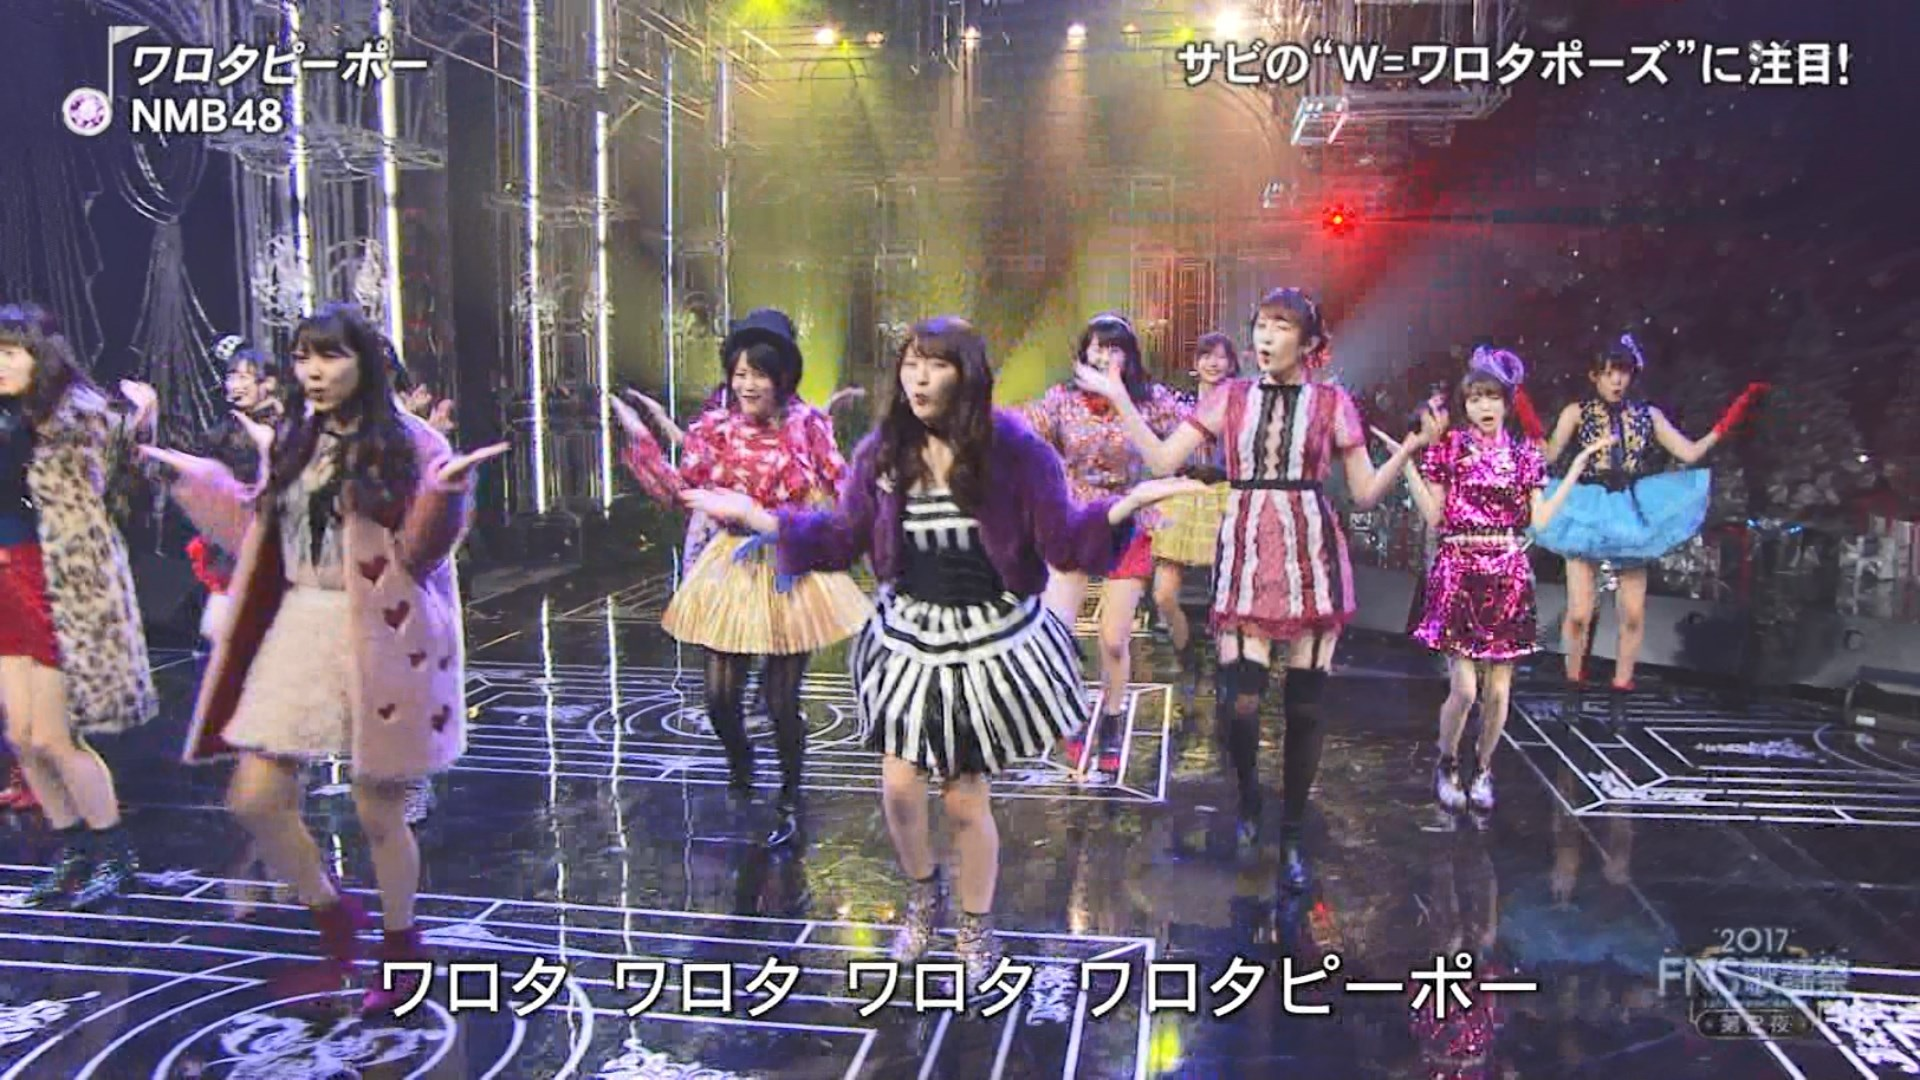 2017FNS歌謡祭第2夜・NMB48ワロタピーポーキャプ-060